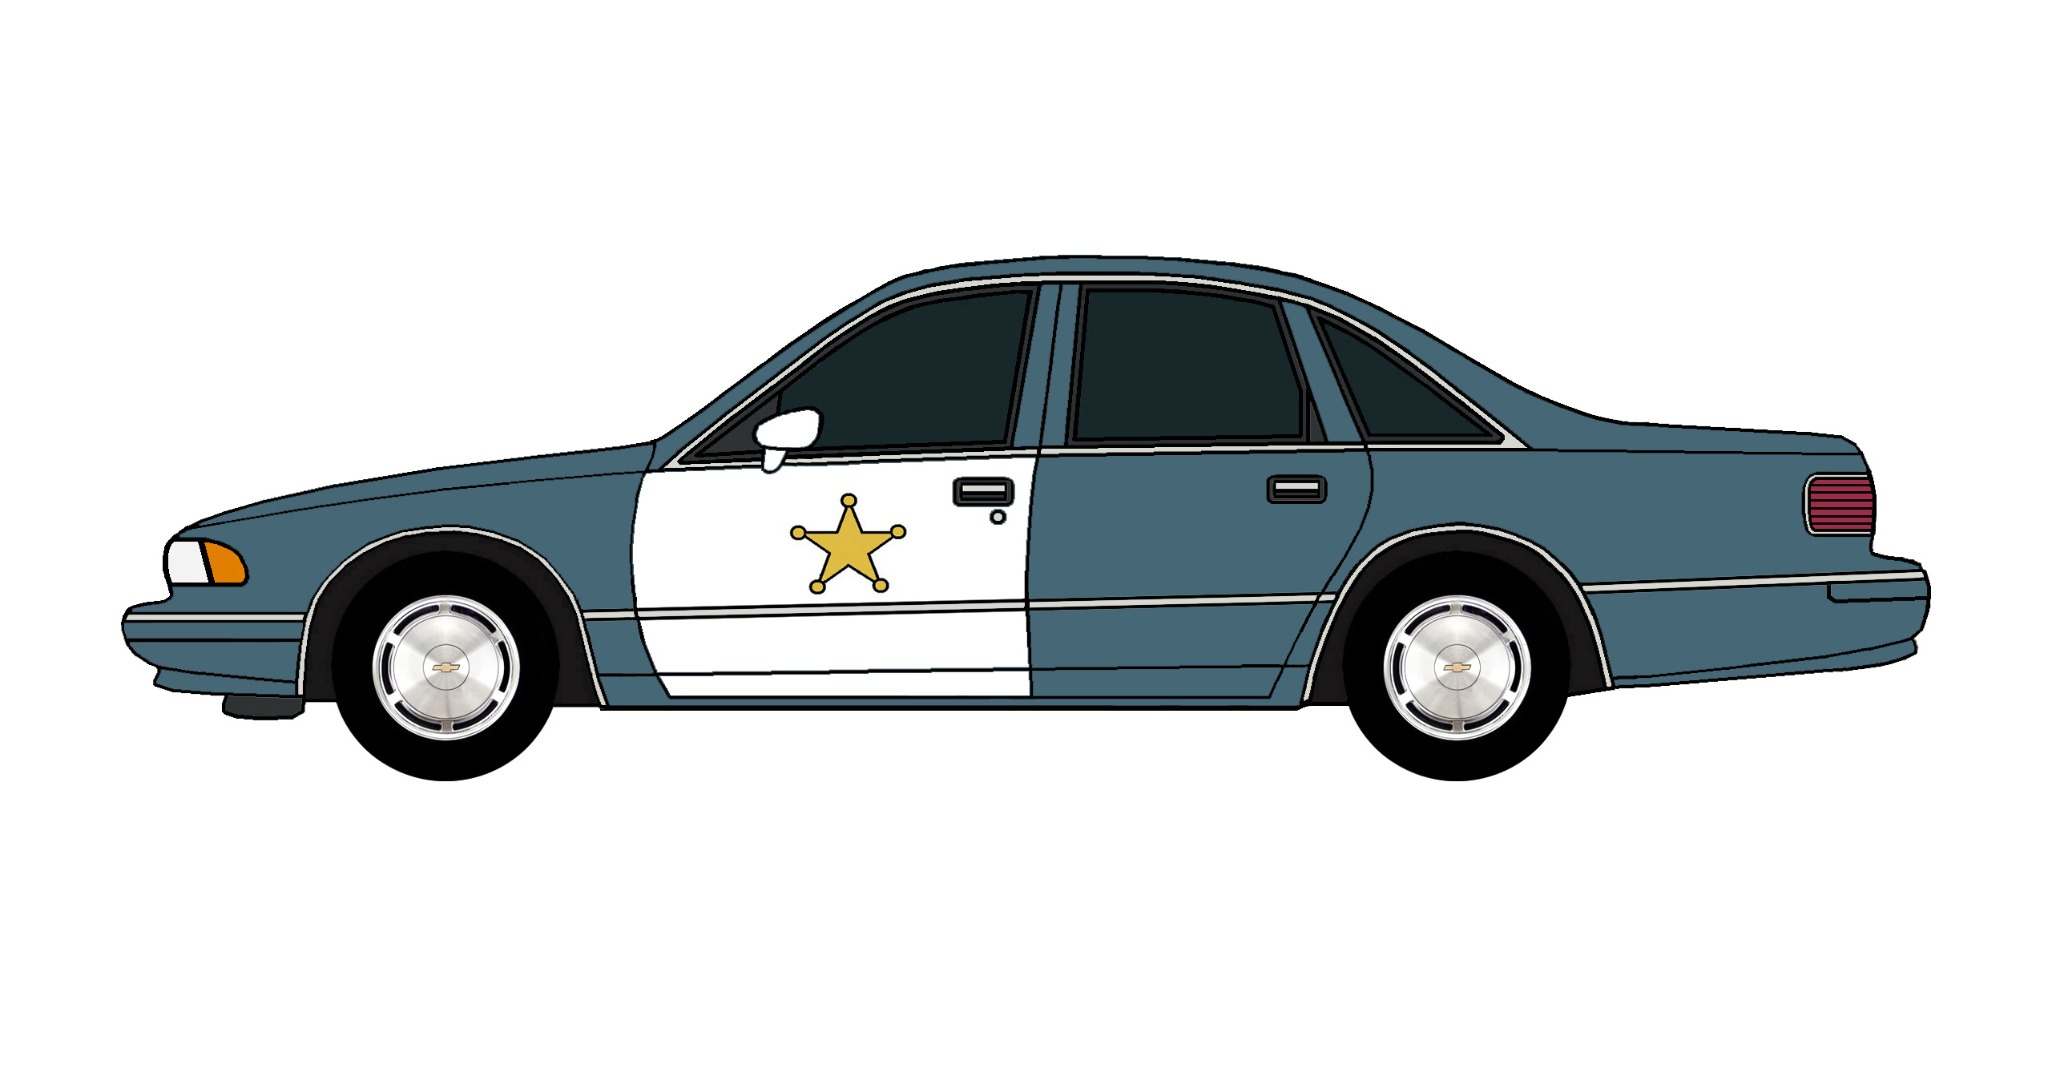 1994 Chevy Caprice Police Car BRITTANY BLUE